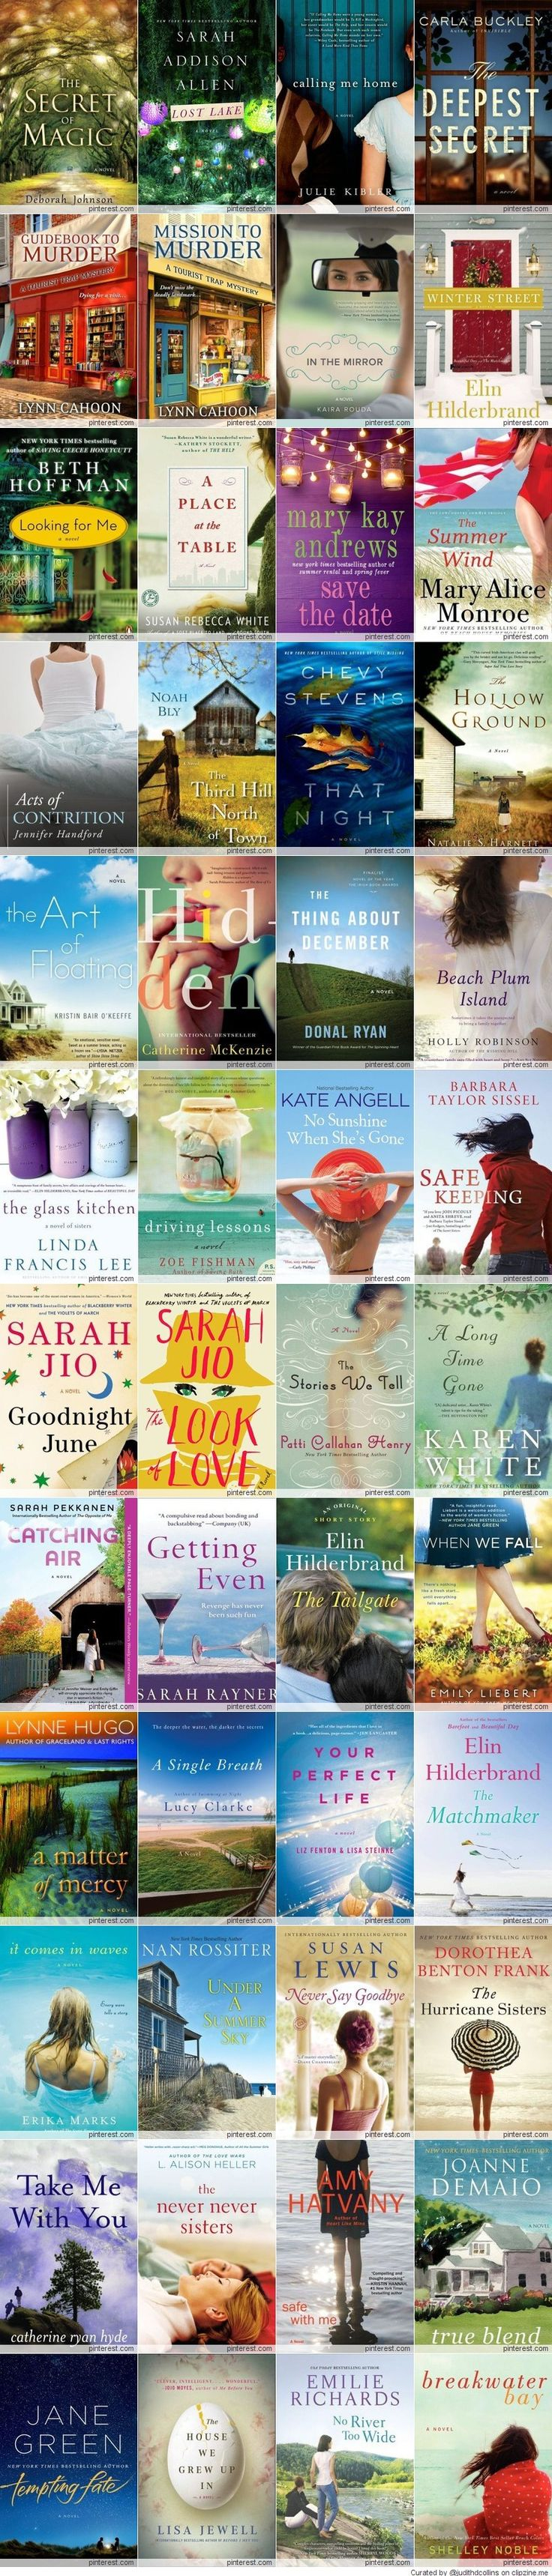 2014 Must Read Books...I gotta check these out....i'm always looking for something new to read!